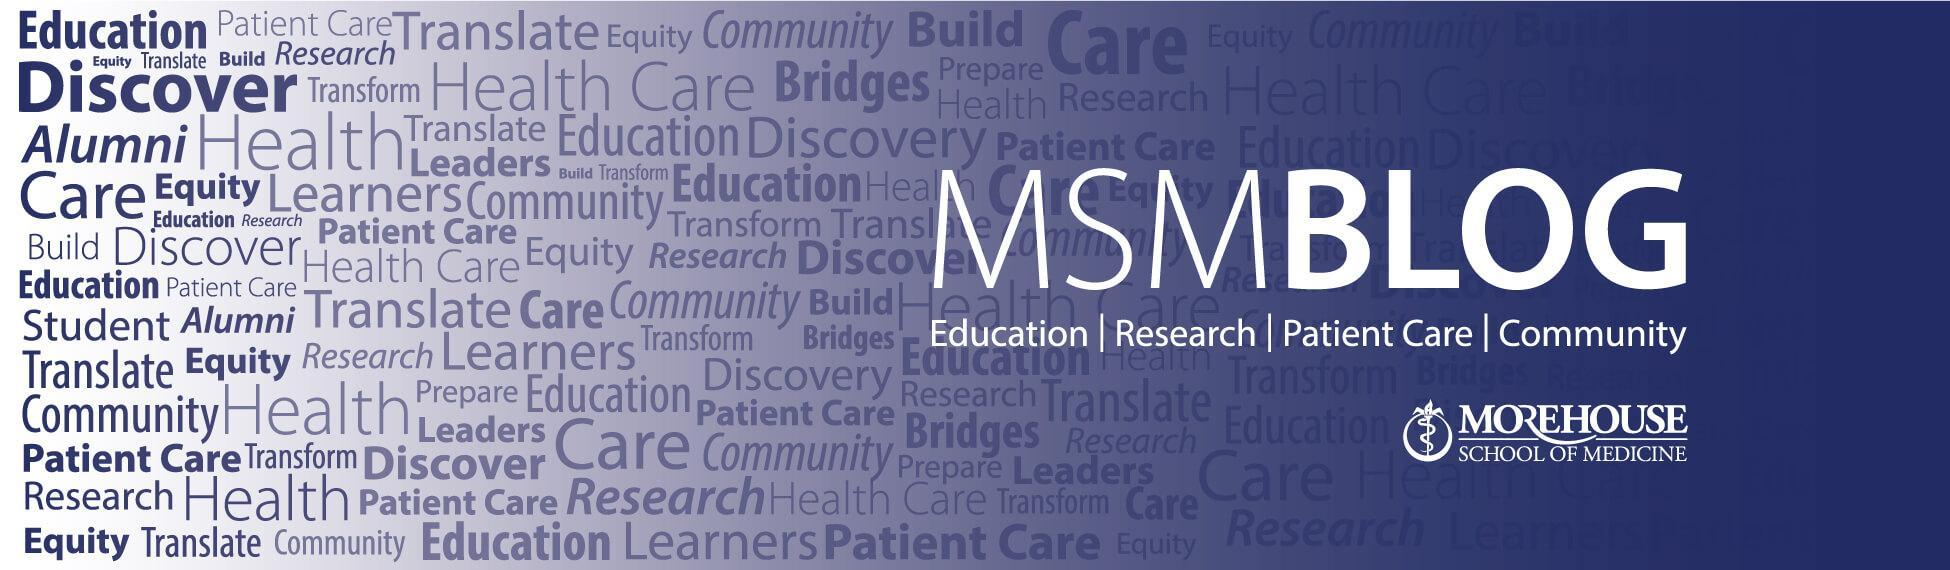 MSM Blog: Education, Research, Patience Care and Community